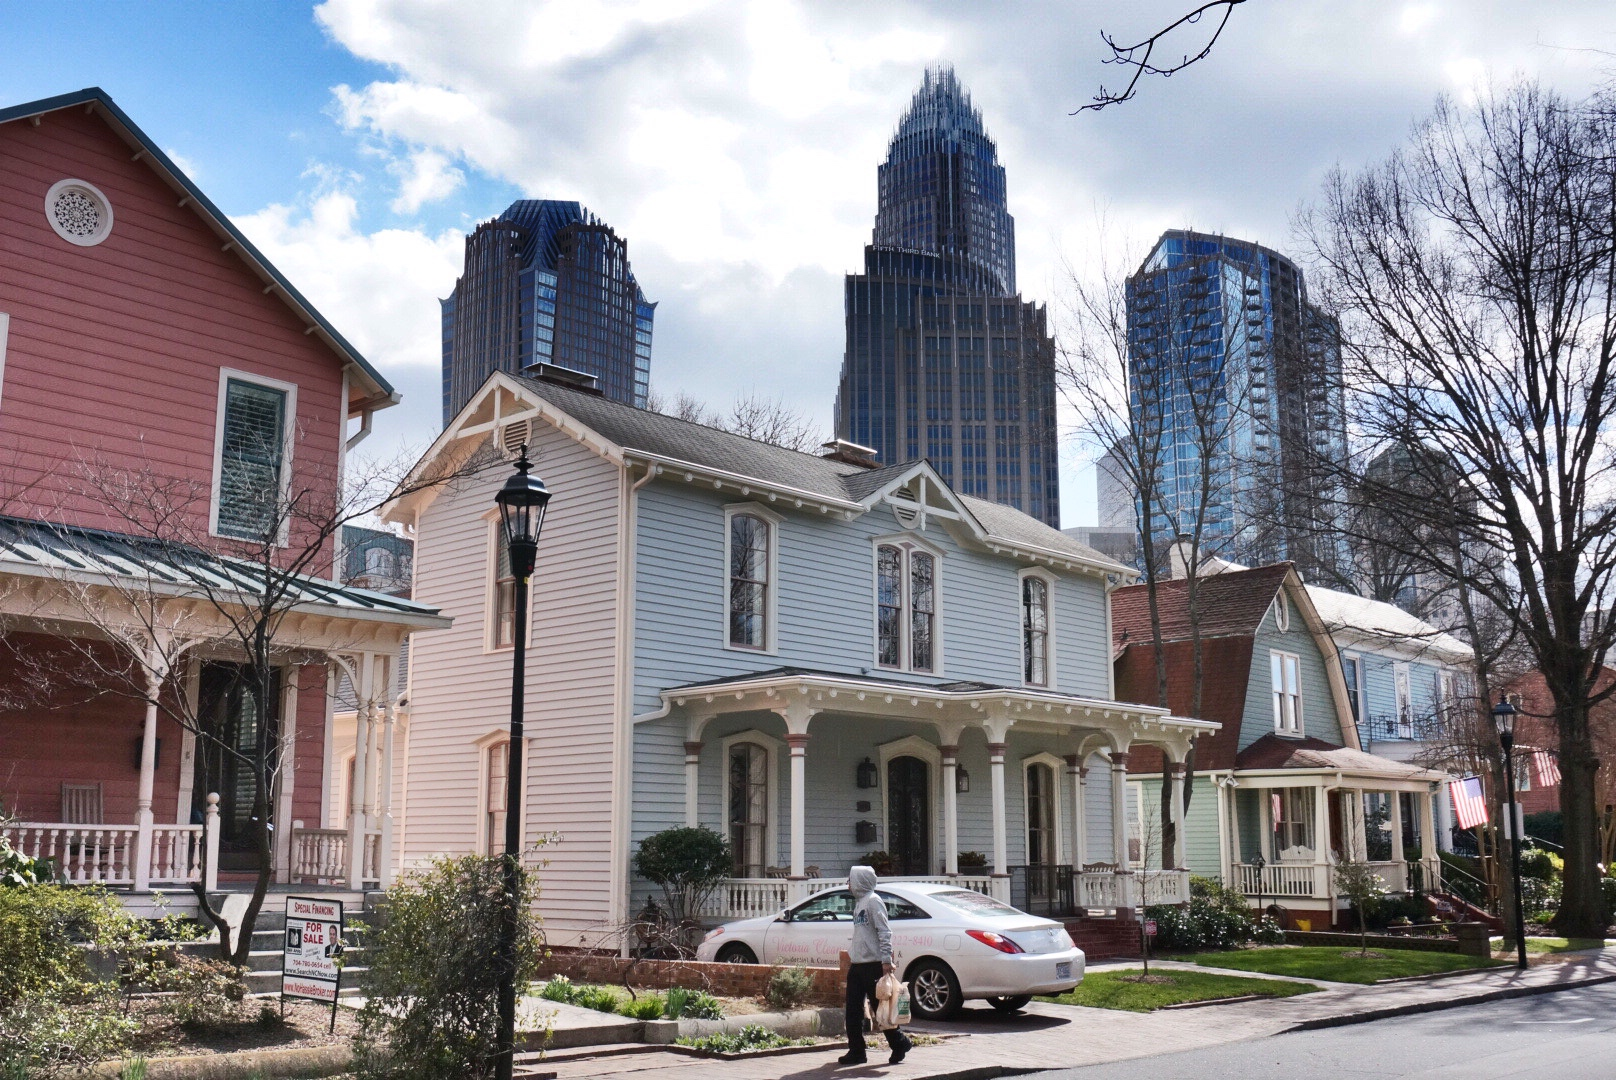 Historic Fourth Ward in uptown Charlotte, North Carolina